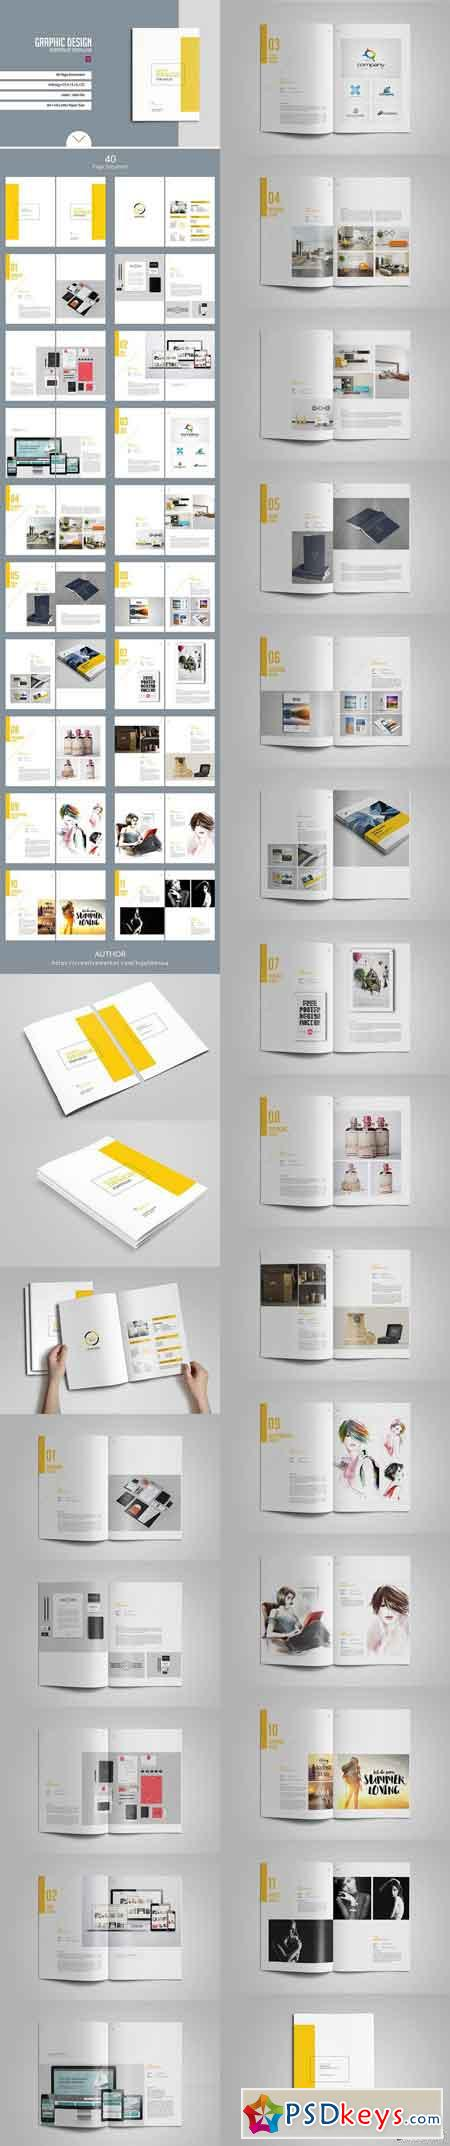 Graphic design portfolio template 1199682 free download for Graphic designer portfolio template free download